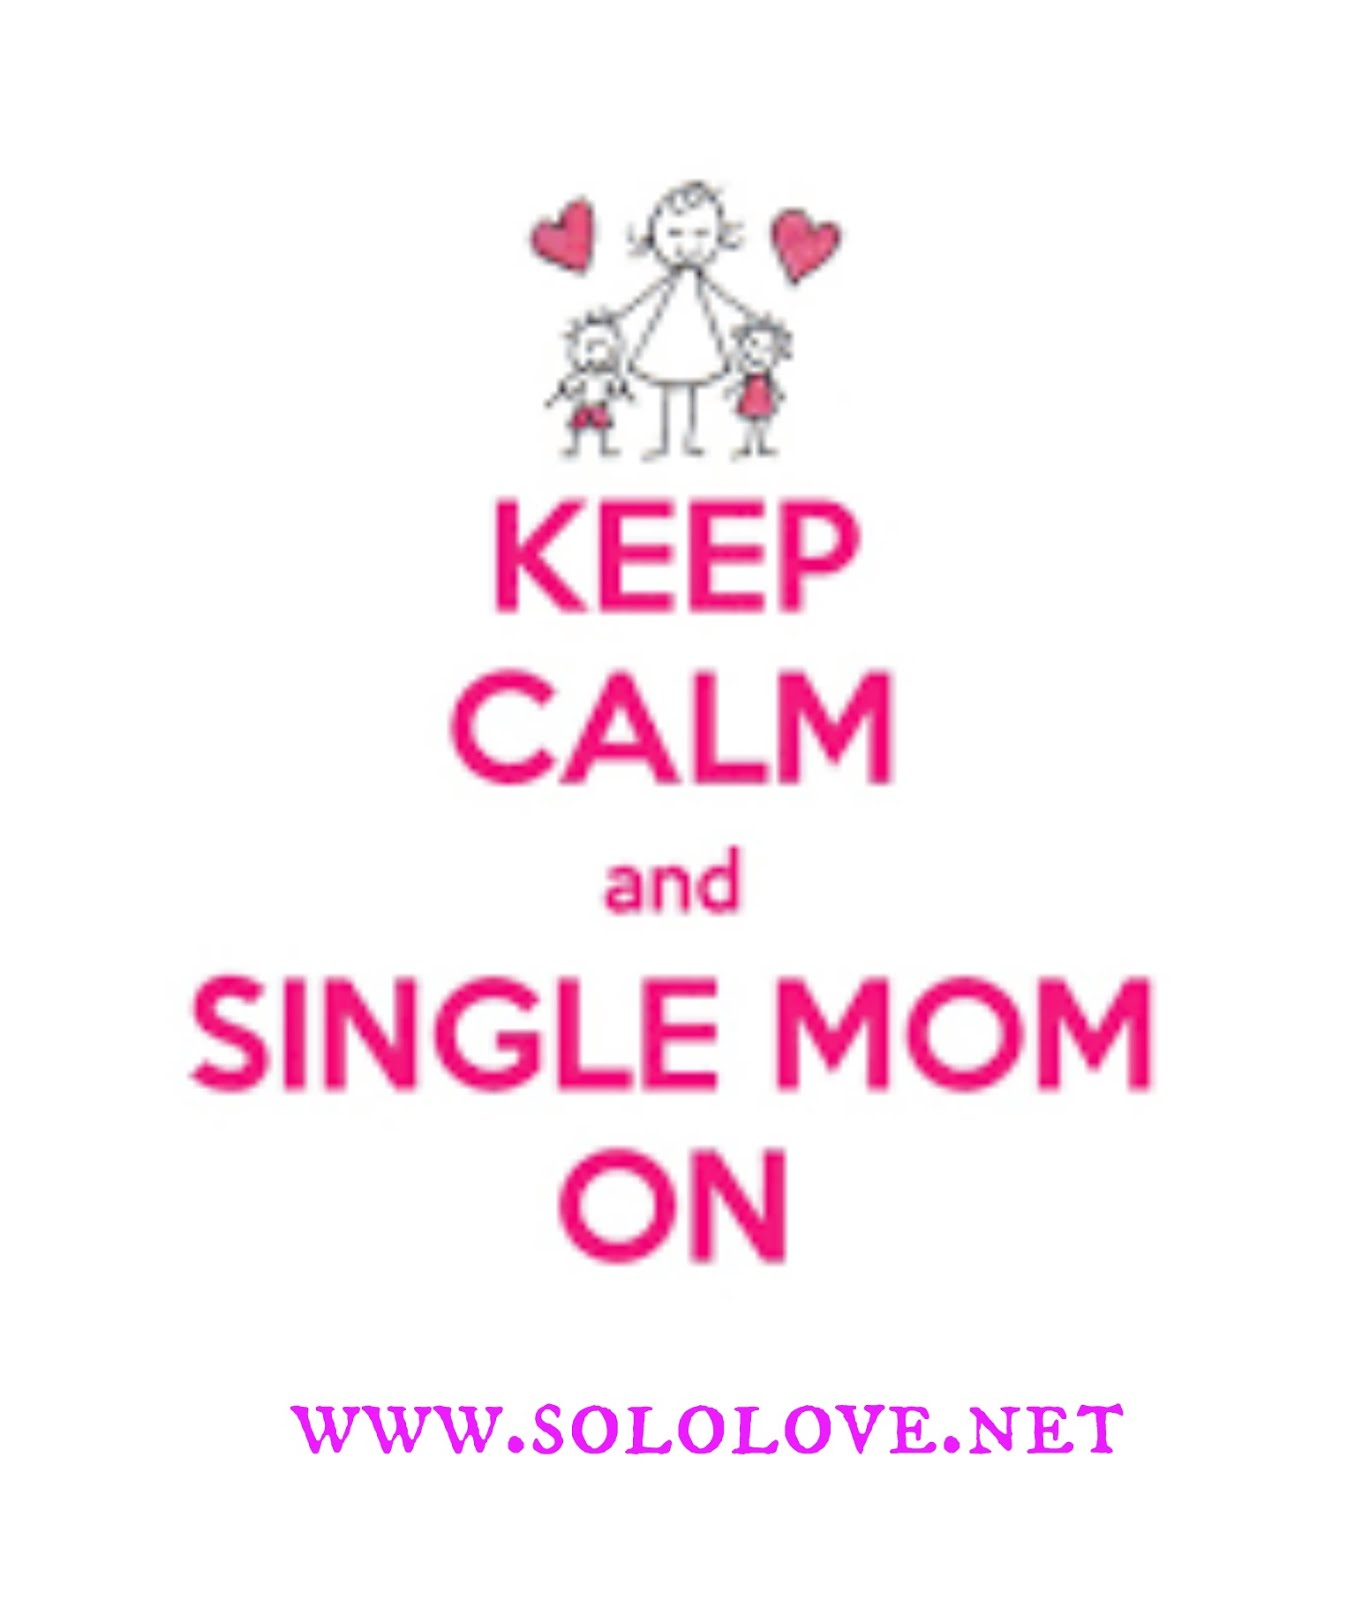 WELCOME SINGLE MOMS!